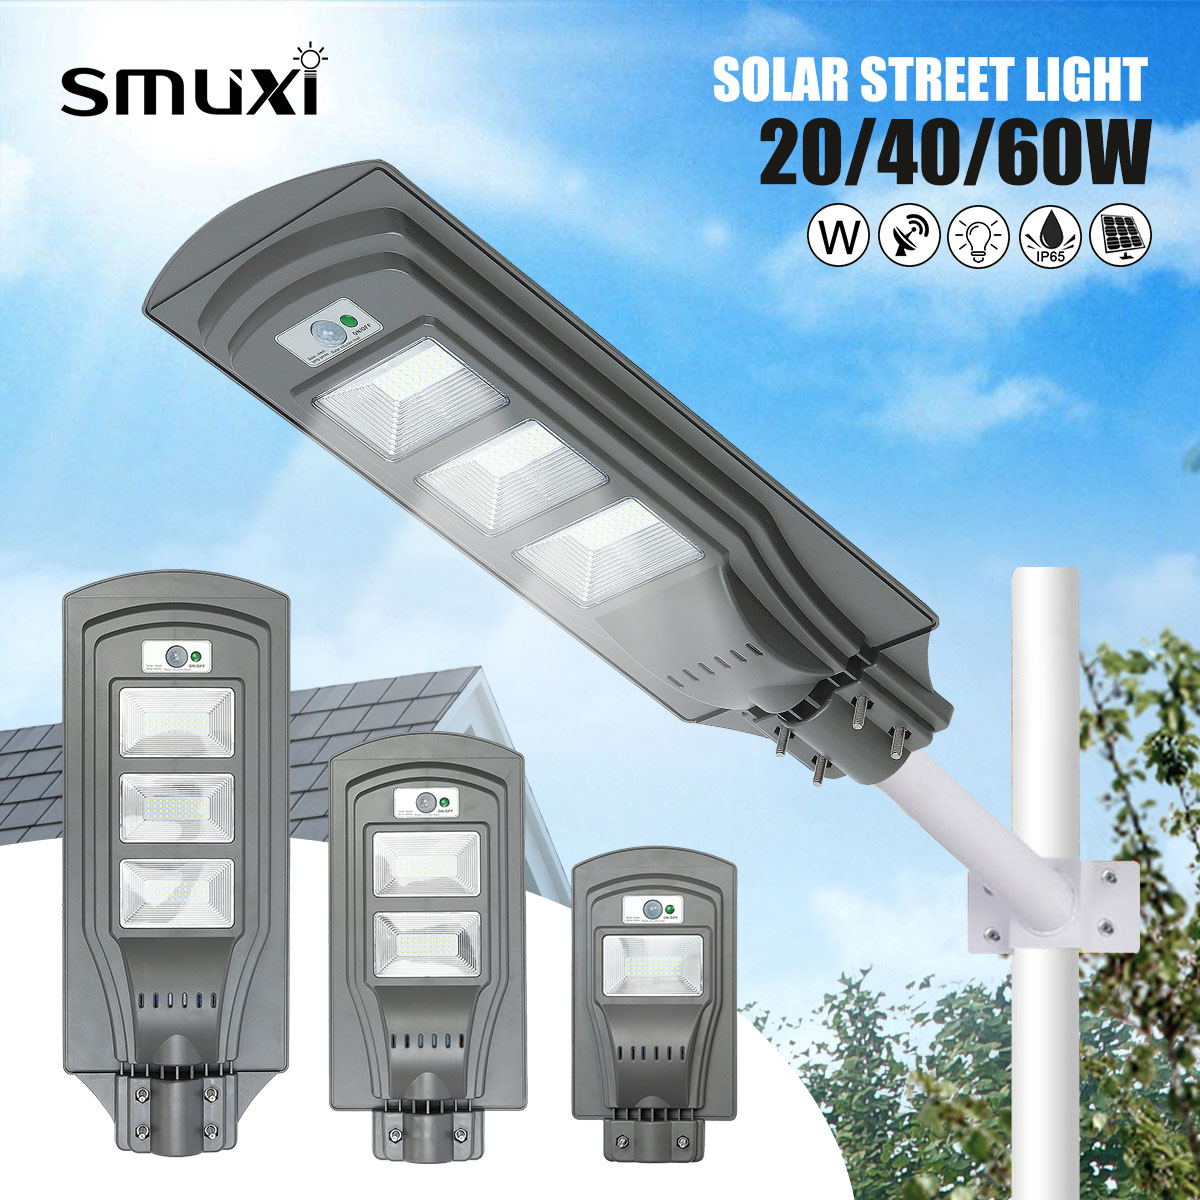 20W 40W 60W Solar Street Lights 40/80/120Led 2835 Radar Motion Activated Sensor Wall Street Light for Outdoor20W 40W 60W Solar Street Lights 40/80/120Led 2835 Radar Motion Activated Sensor Wall Street Light for Outdoor